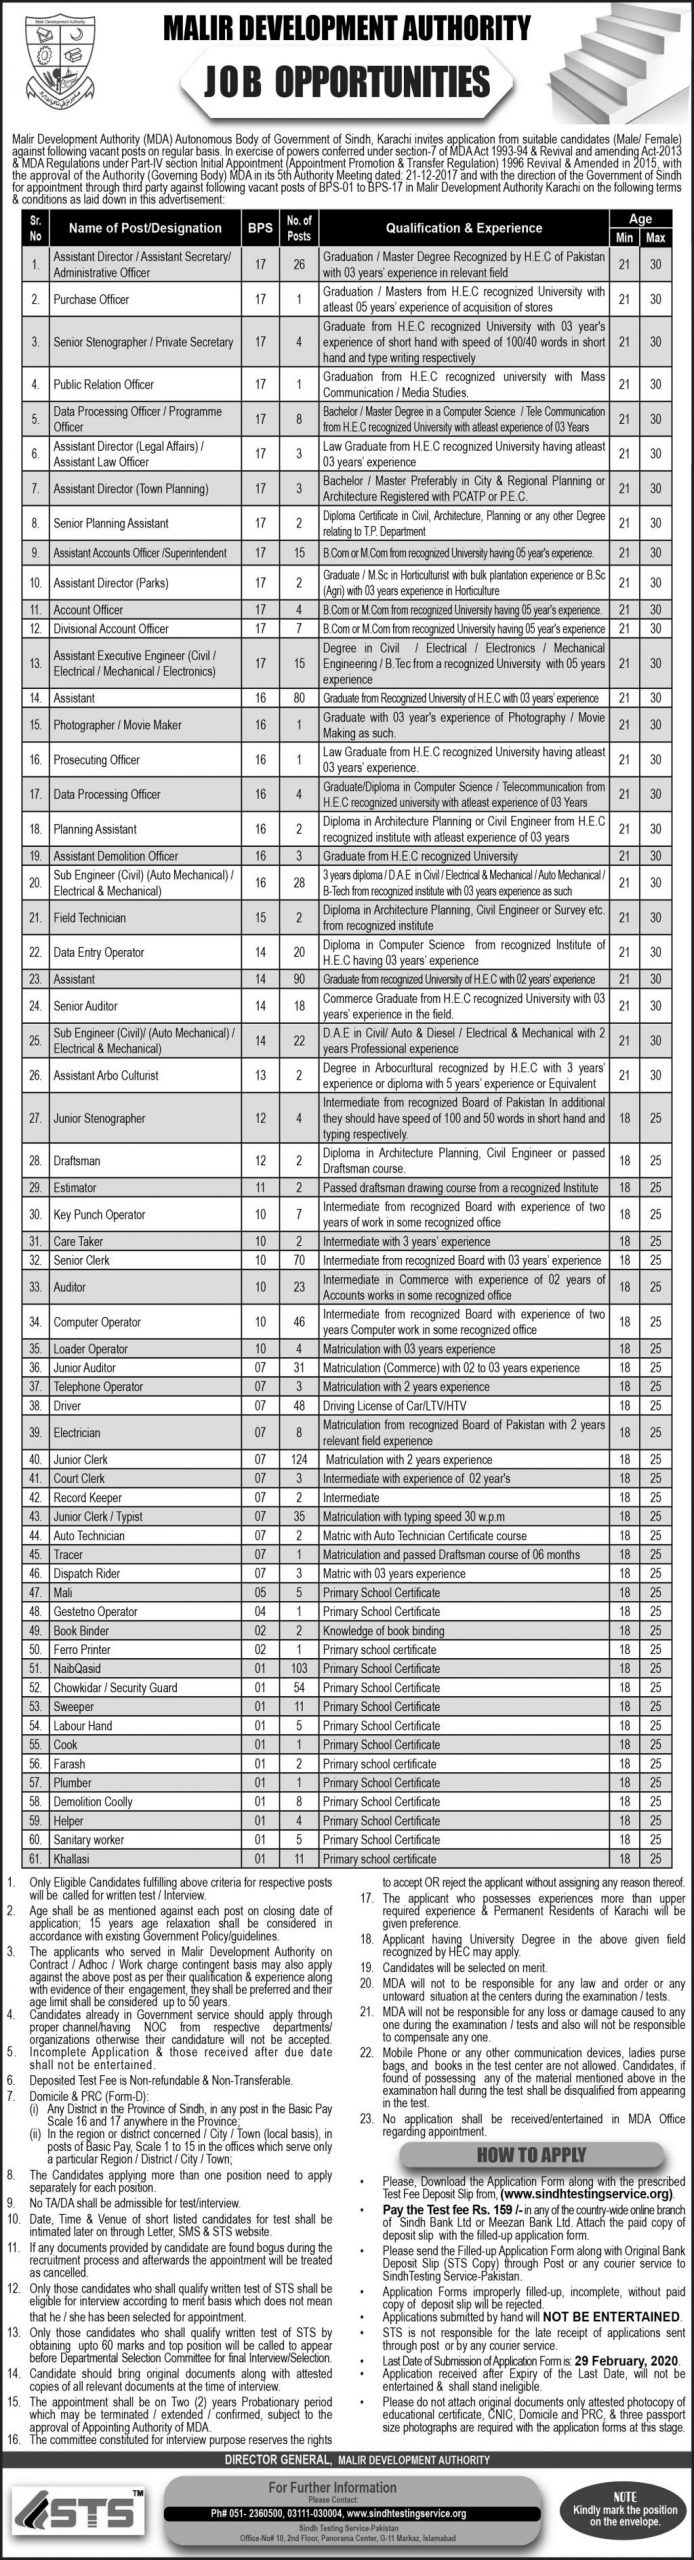 Malir Development Authority (MDA jobs